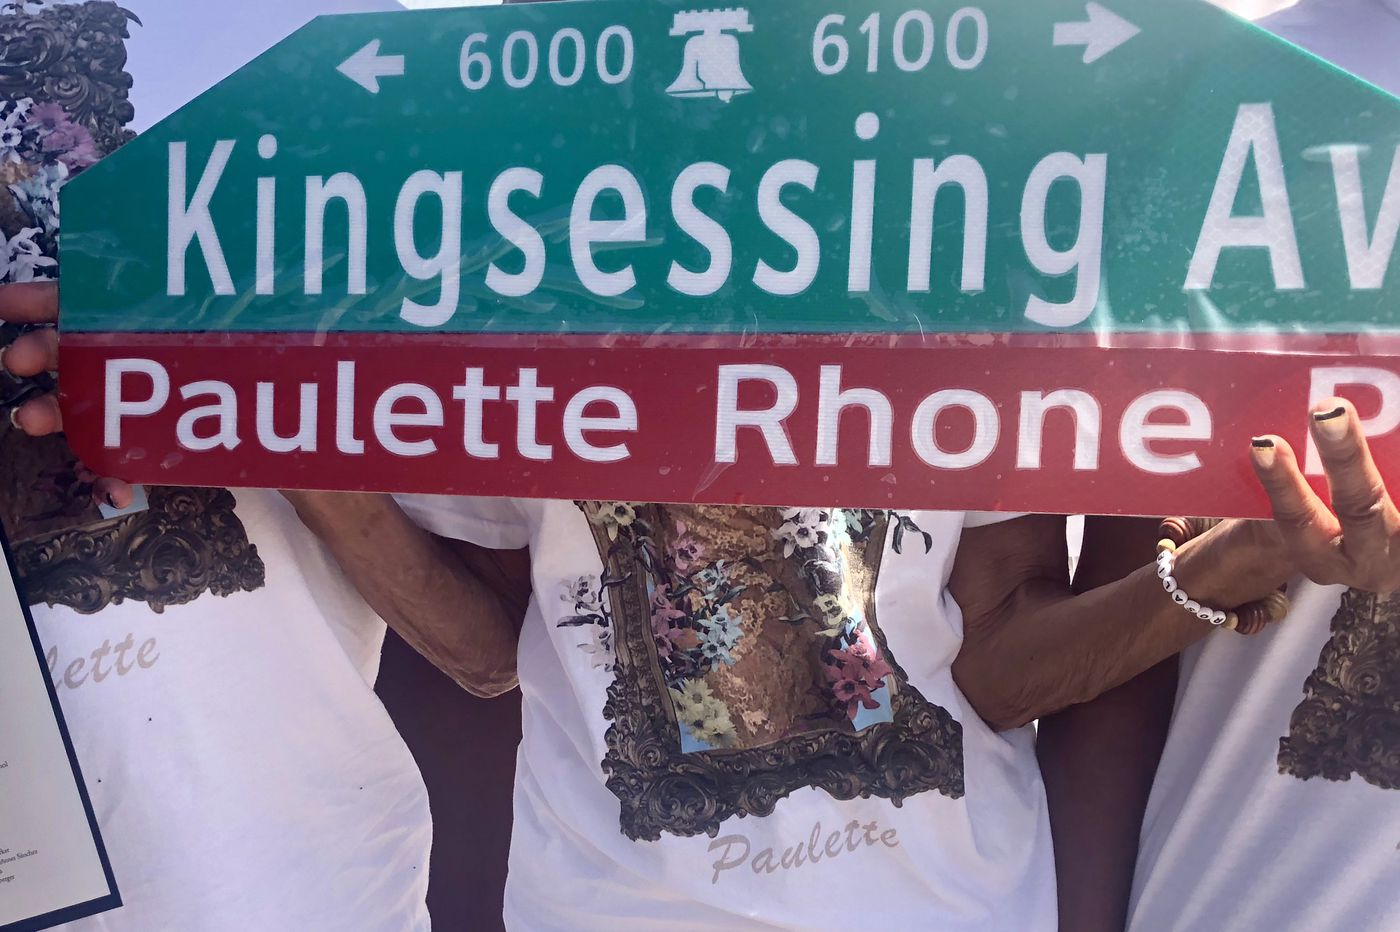 Beloved for Helping Restore Mount Moriah Cemetery, Paulette Rhone Gets a Sign